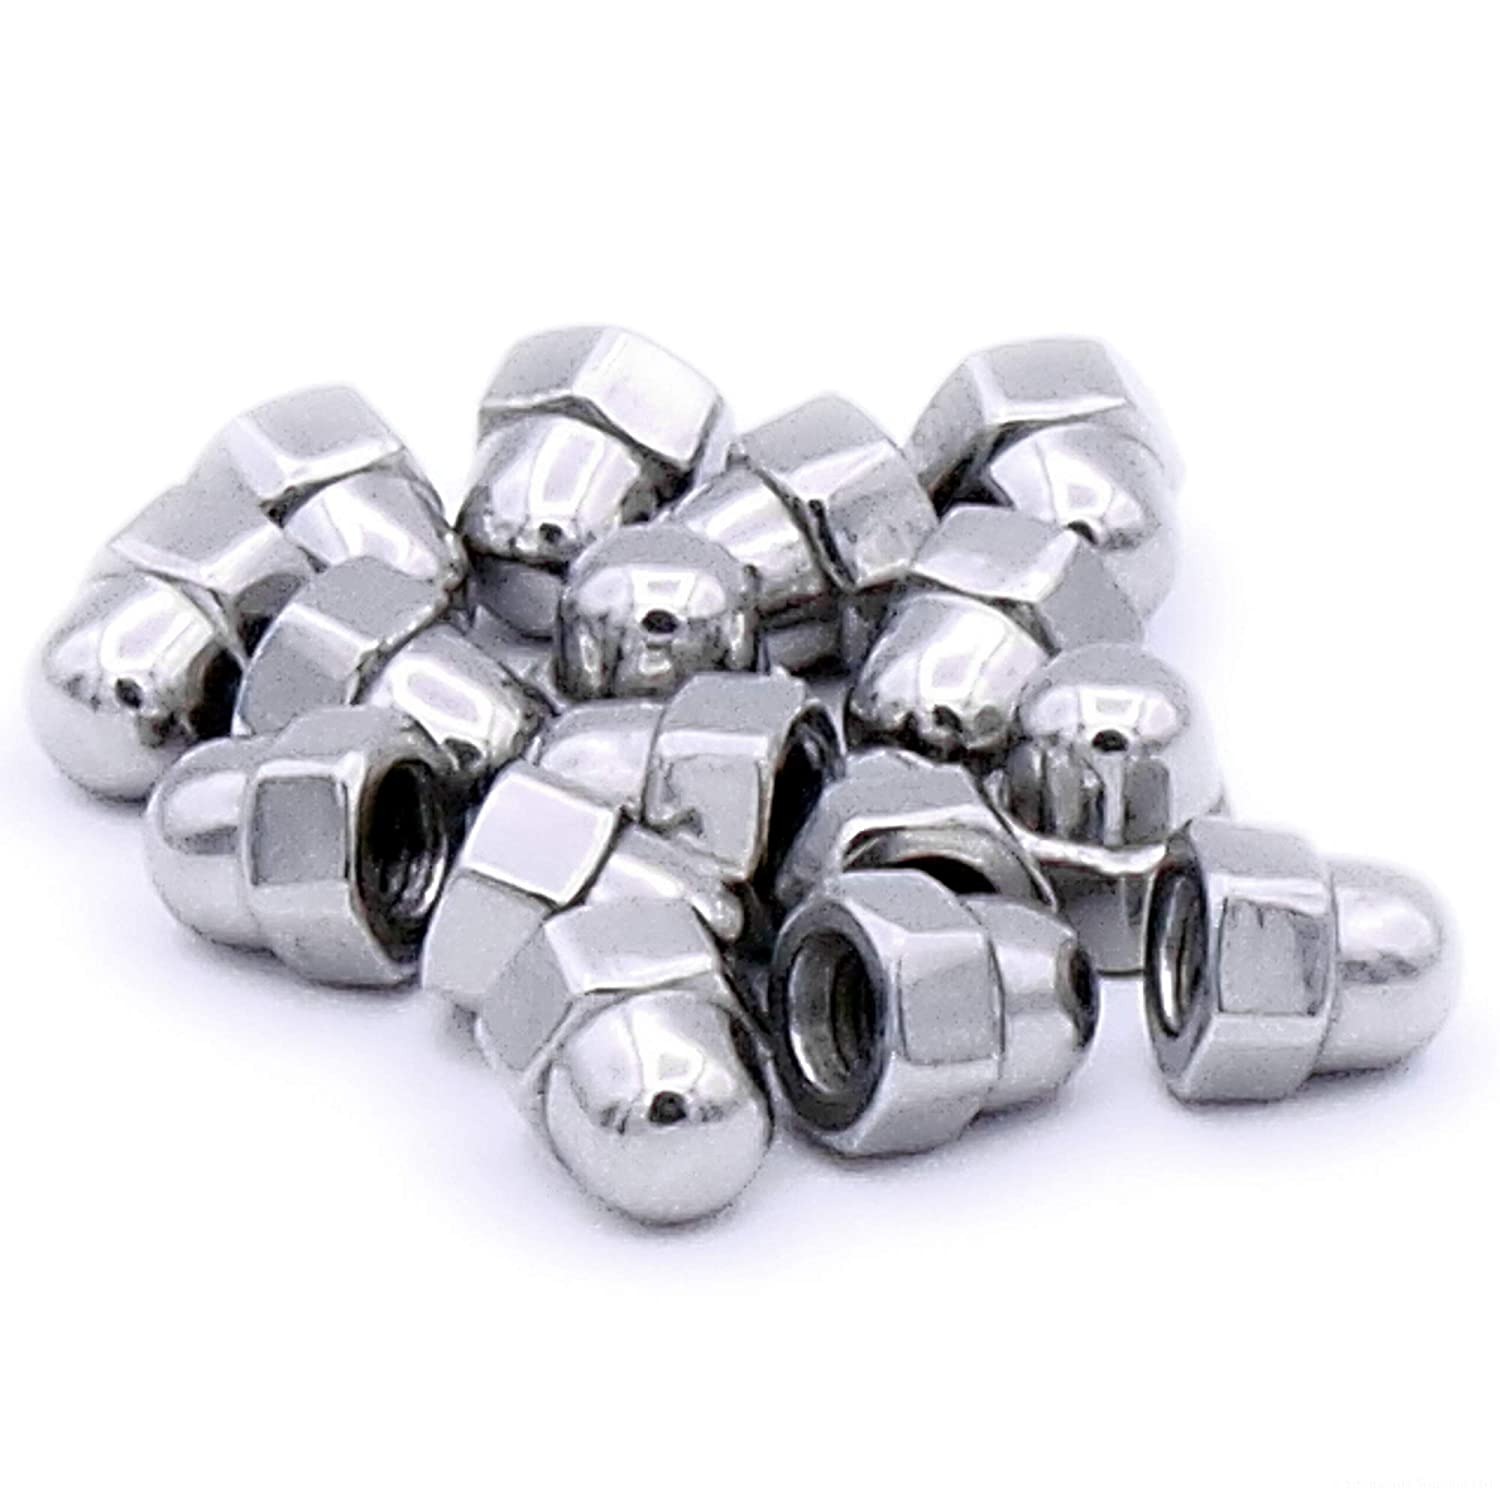 M4 (4mm) Dome Cap Nuts - Stainless Steel (Pack of 20) Singularity Supplies Ltd